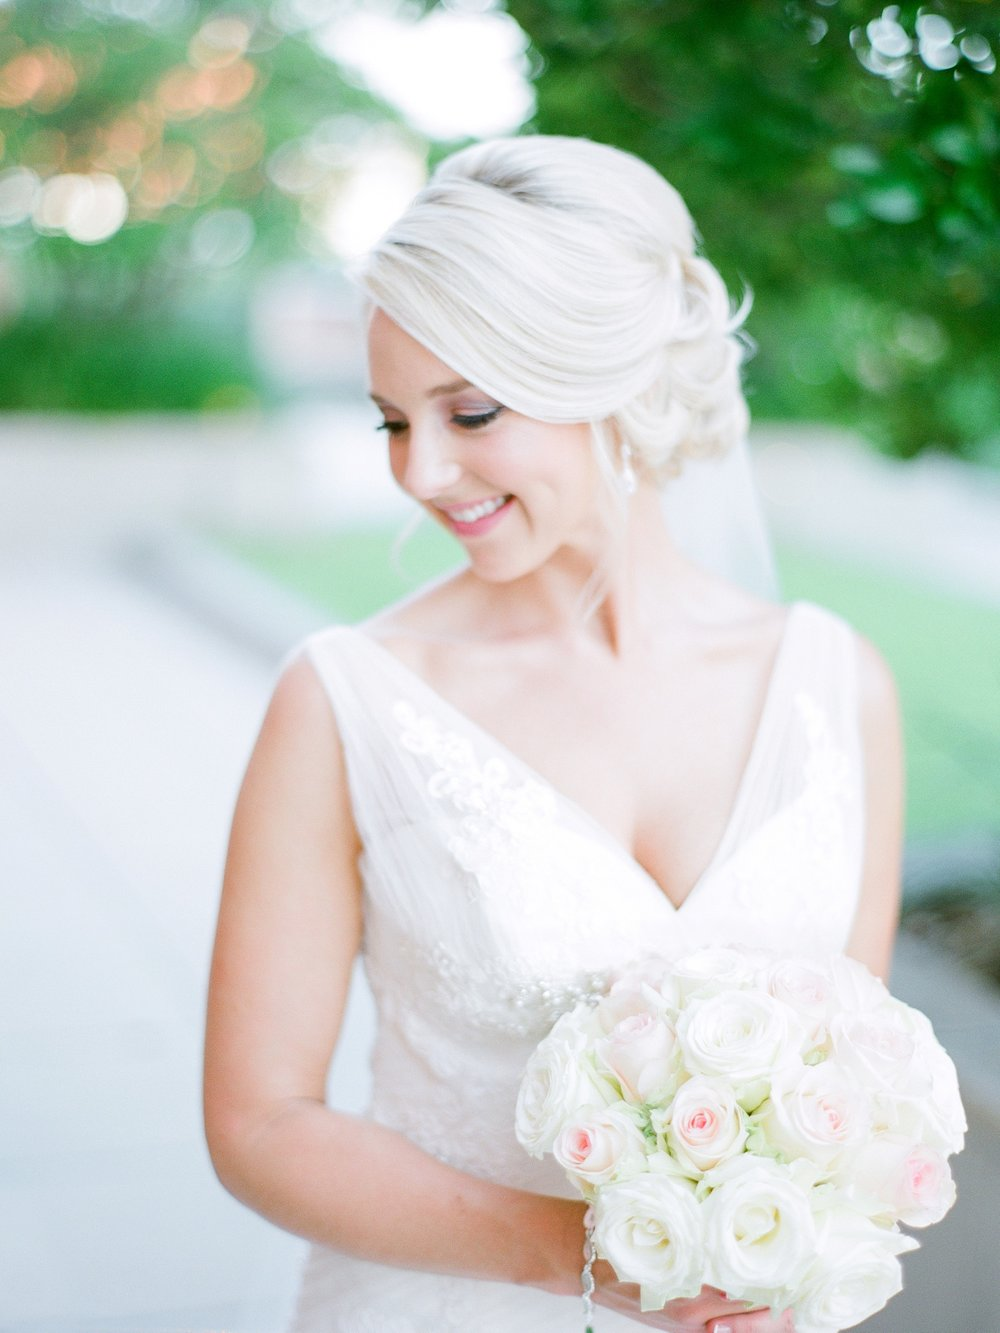 bella couture birmingham alabama_photography_editorial_beautiful bride_montgomery wedding photographer_alabama wedding photographer_destin rosemary alys beach 30A luxury wedding photographer